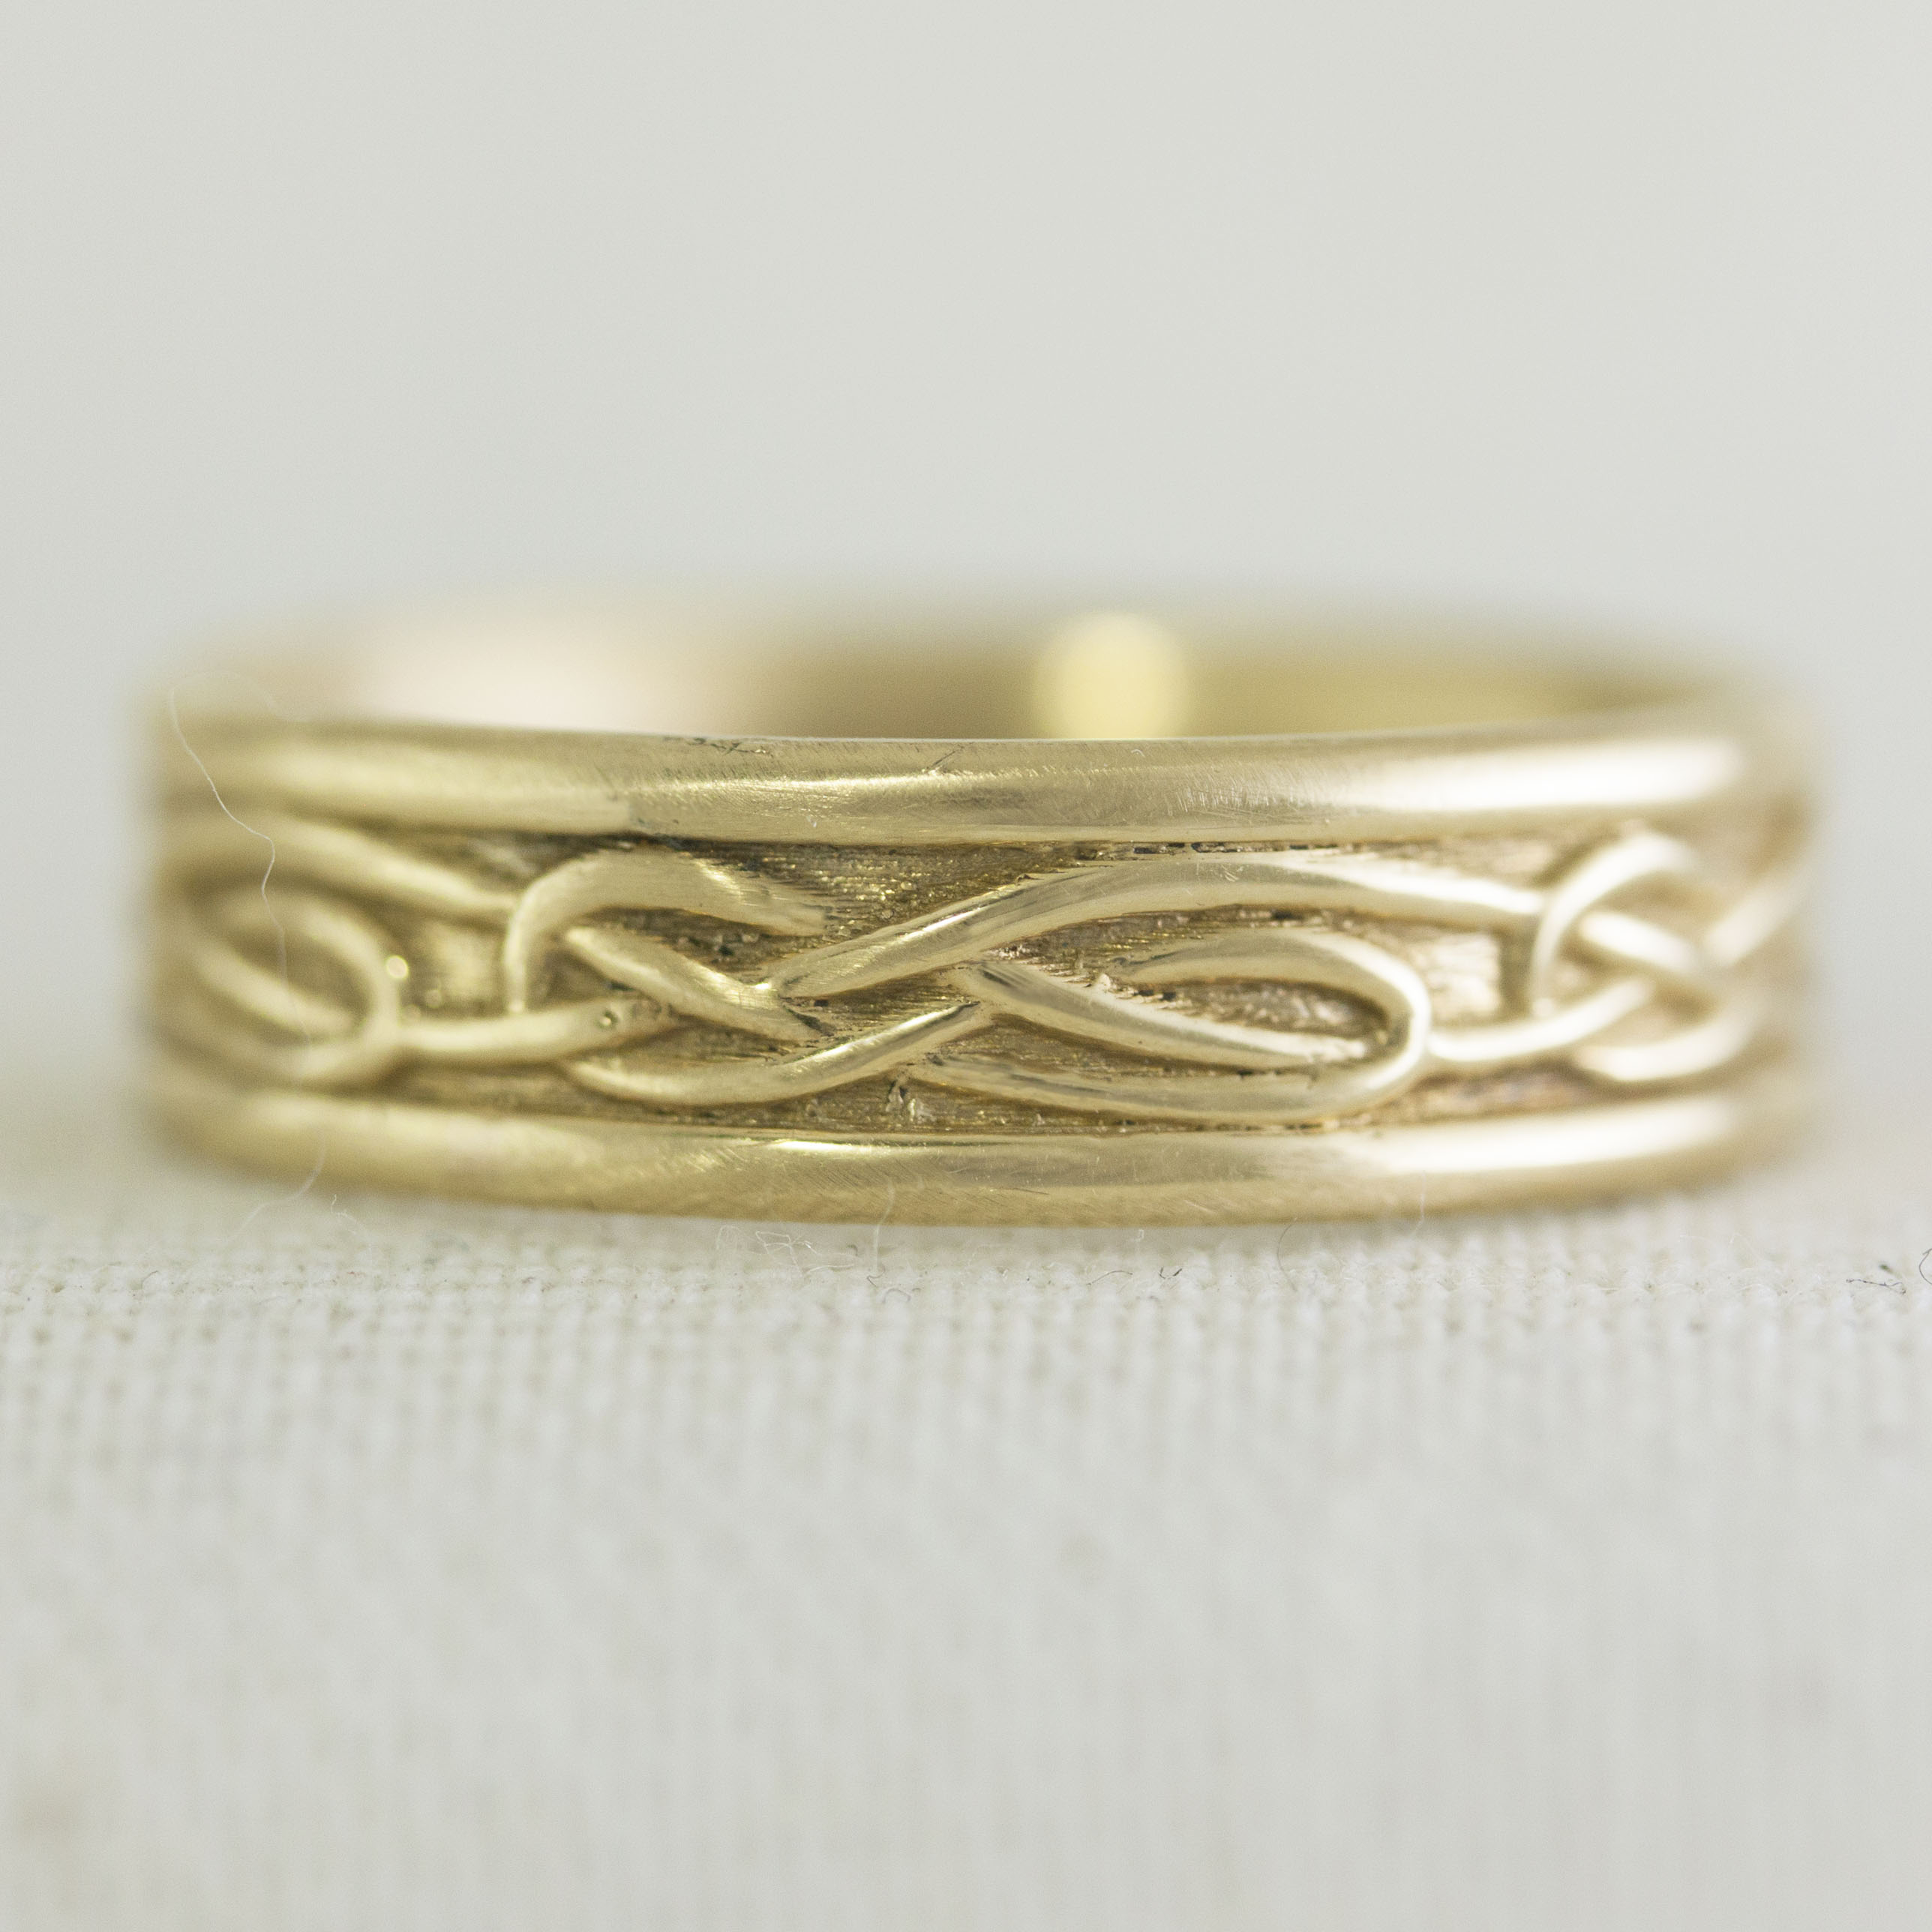 in products gold rings eternity la by ring knot solid mens yellow more wedding celtic wide band design